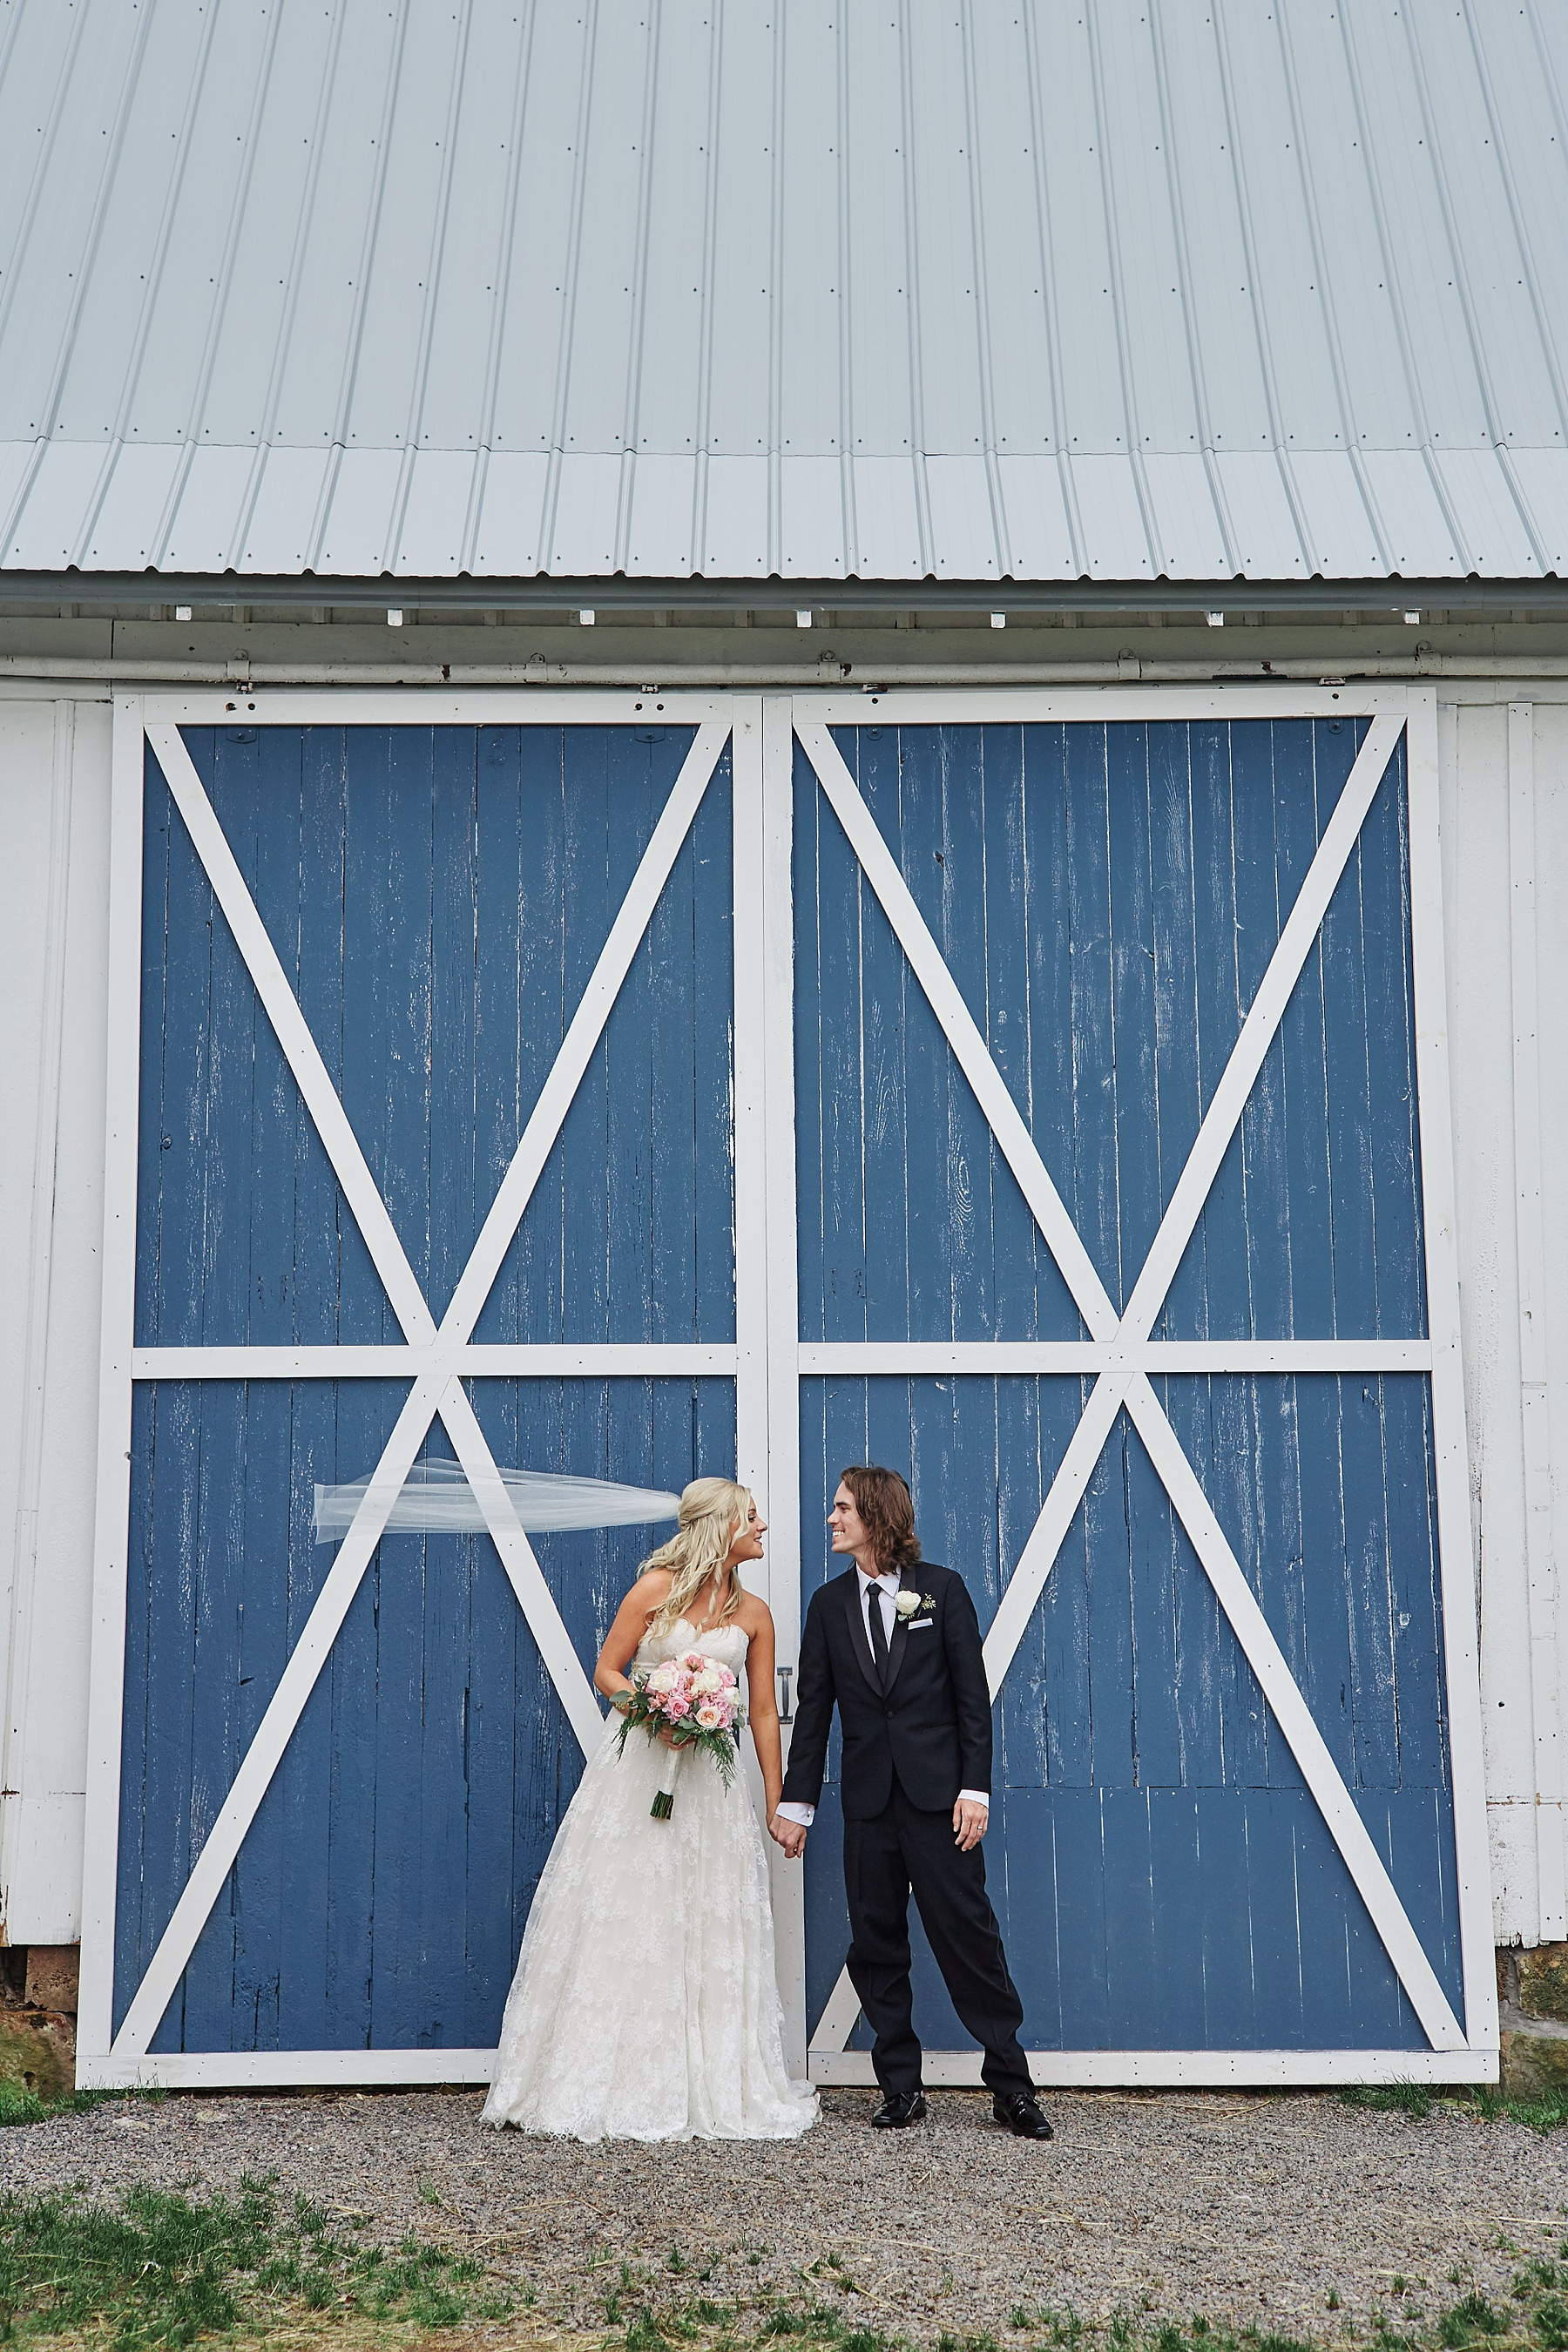 Bloom-Lake-Barn-Wedding-Schafer-Minnesota-Outdoor_0254.jpg